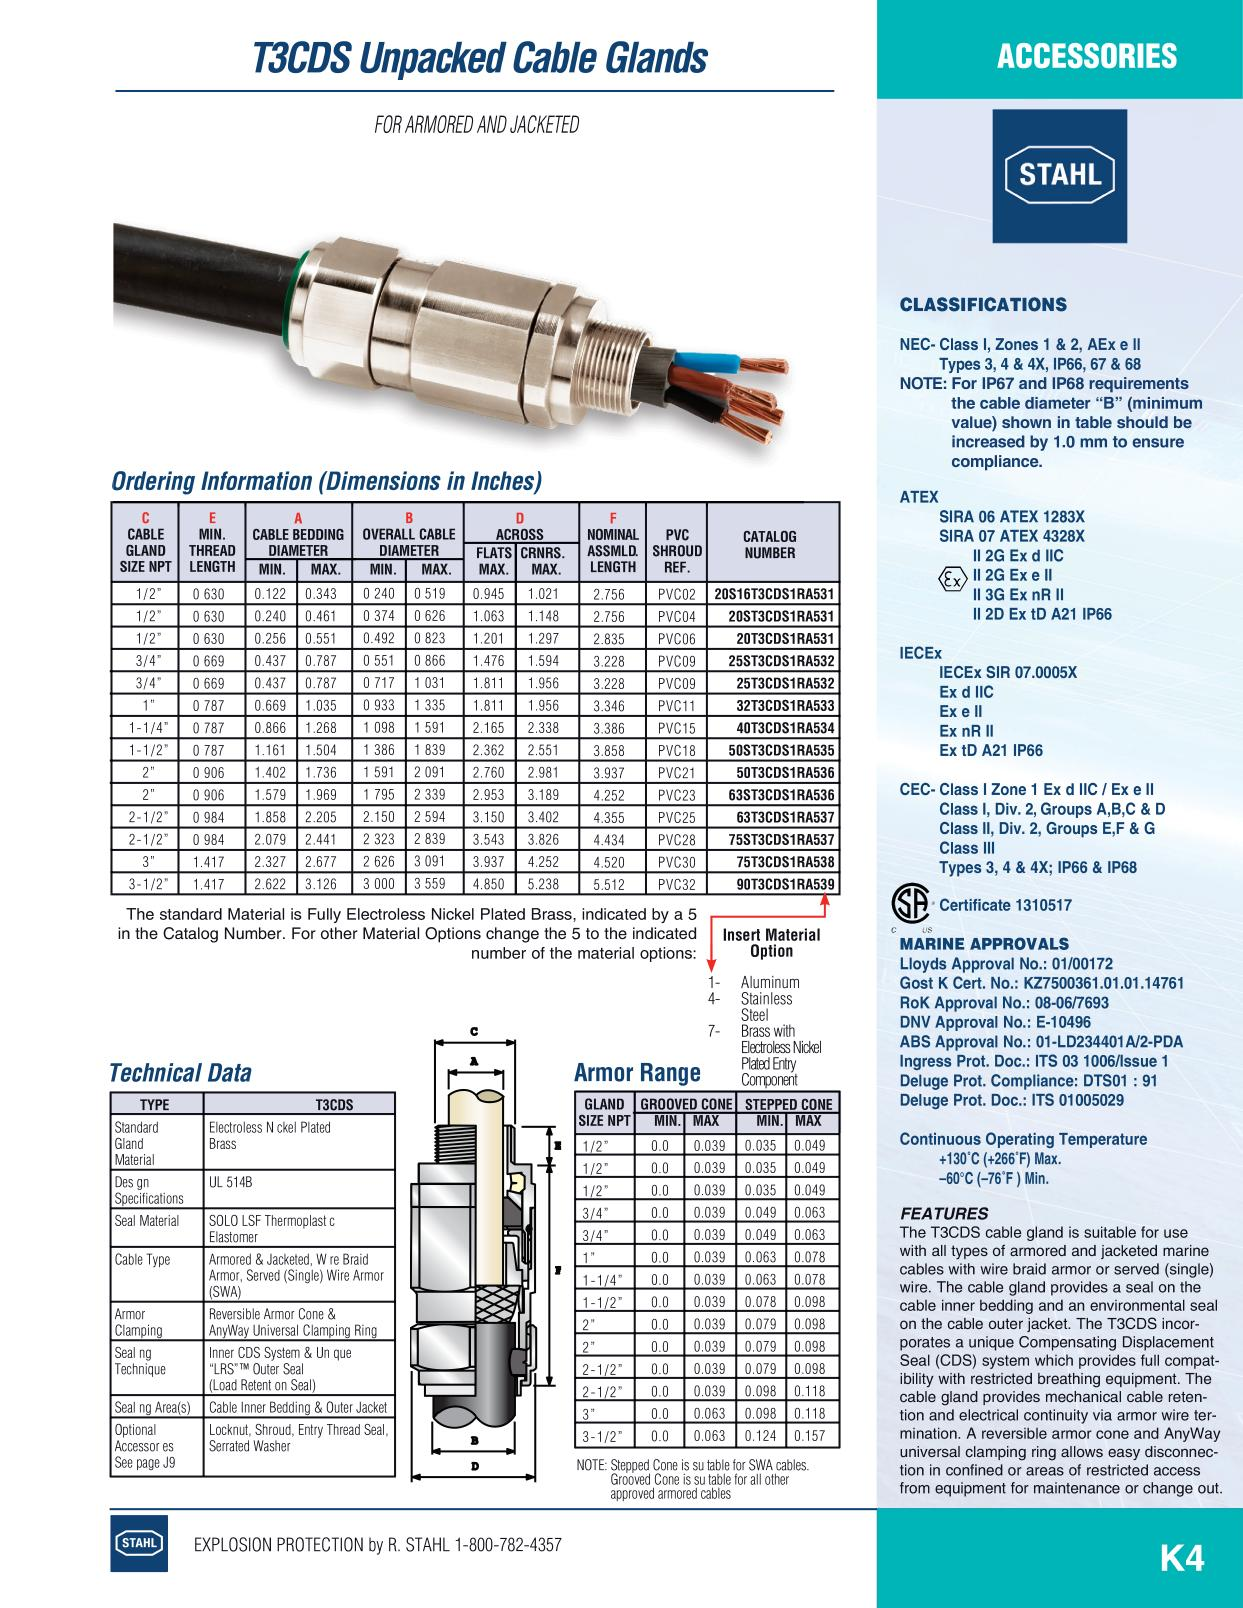 Accessories - R Stahl Electrical Catalog 9016 Page K4